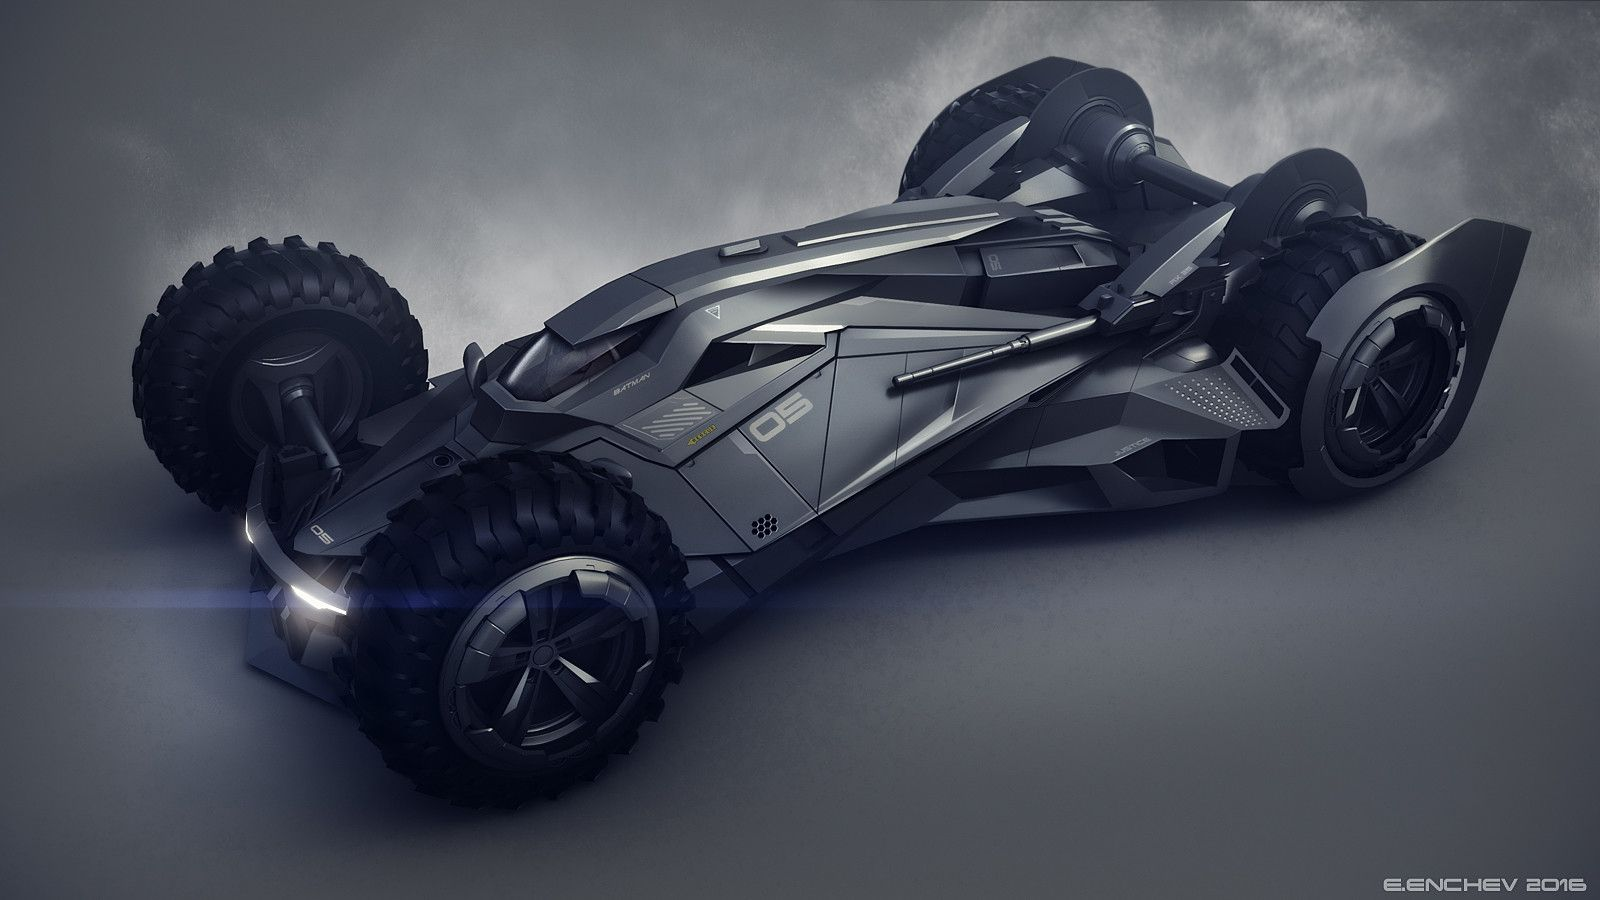 Best Batmobiles Images On Pinterest Batman Cartoons And Death - Brand new batmobile revealed awesome